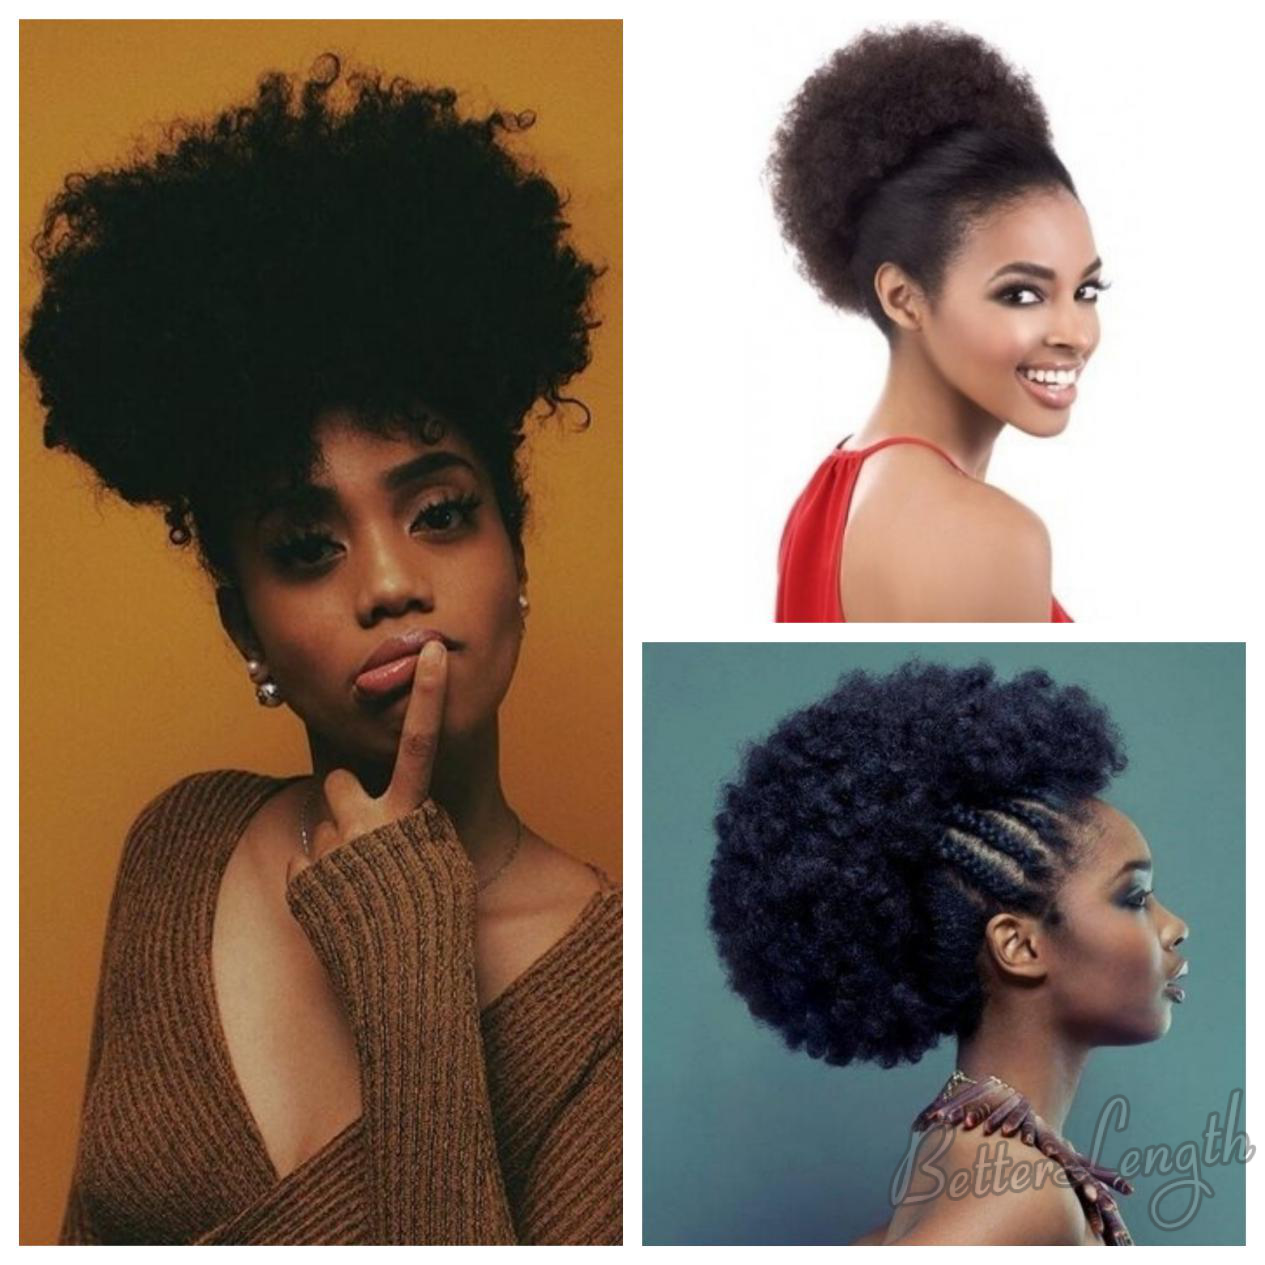 Best Natural Hair Youtube Videos